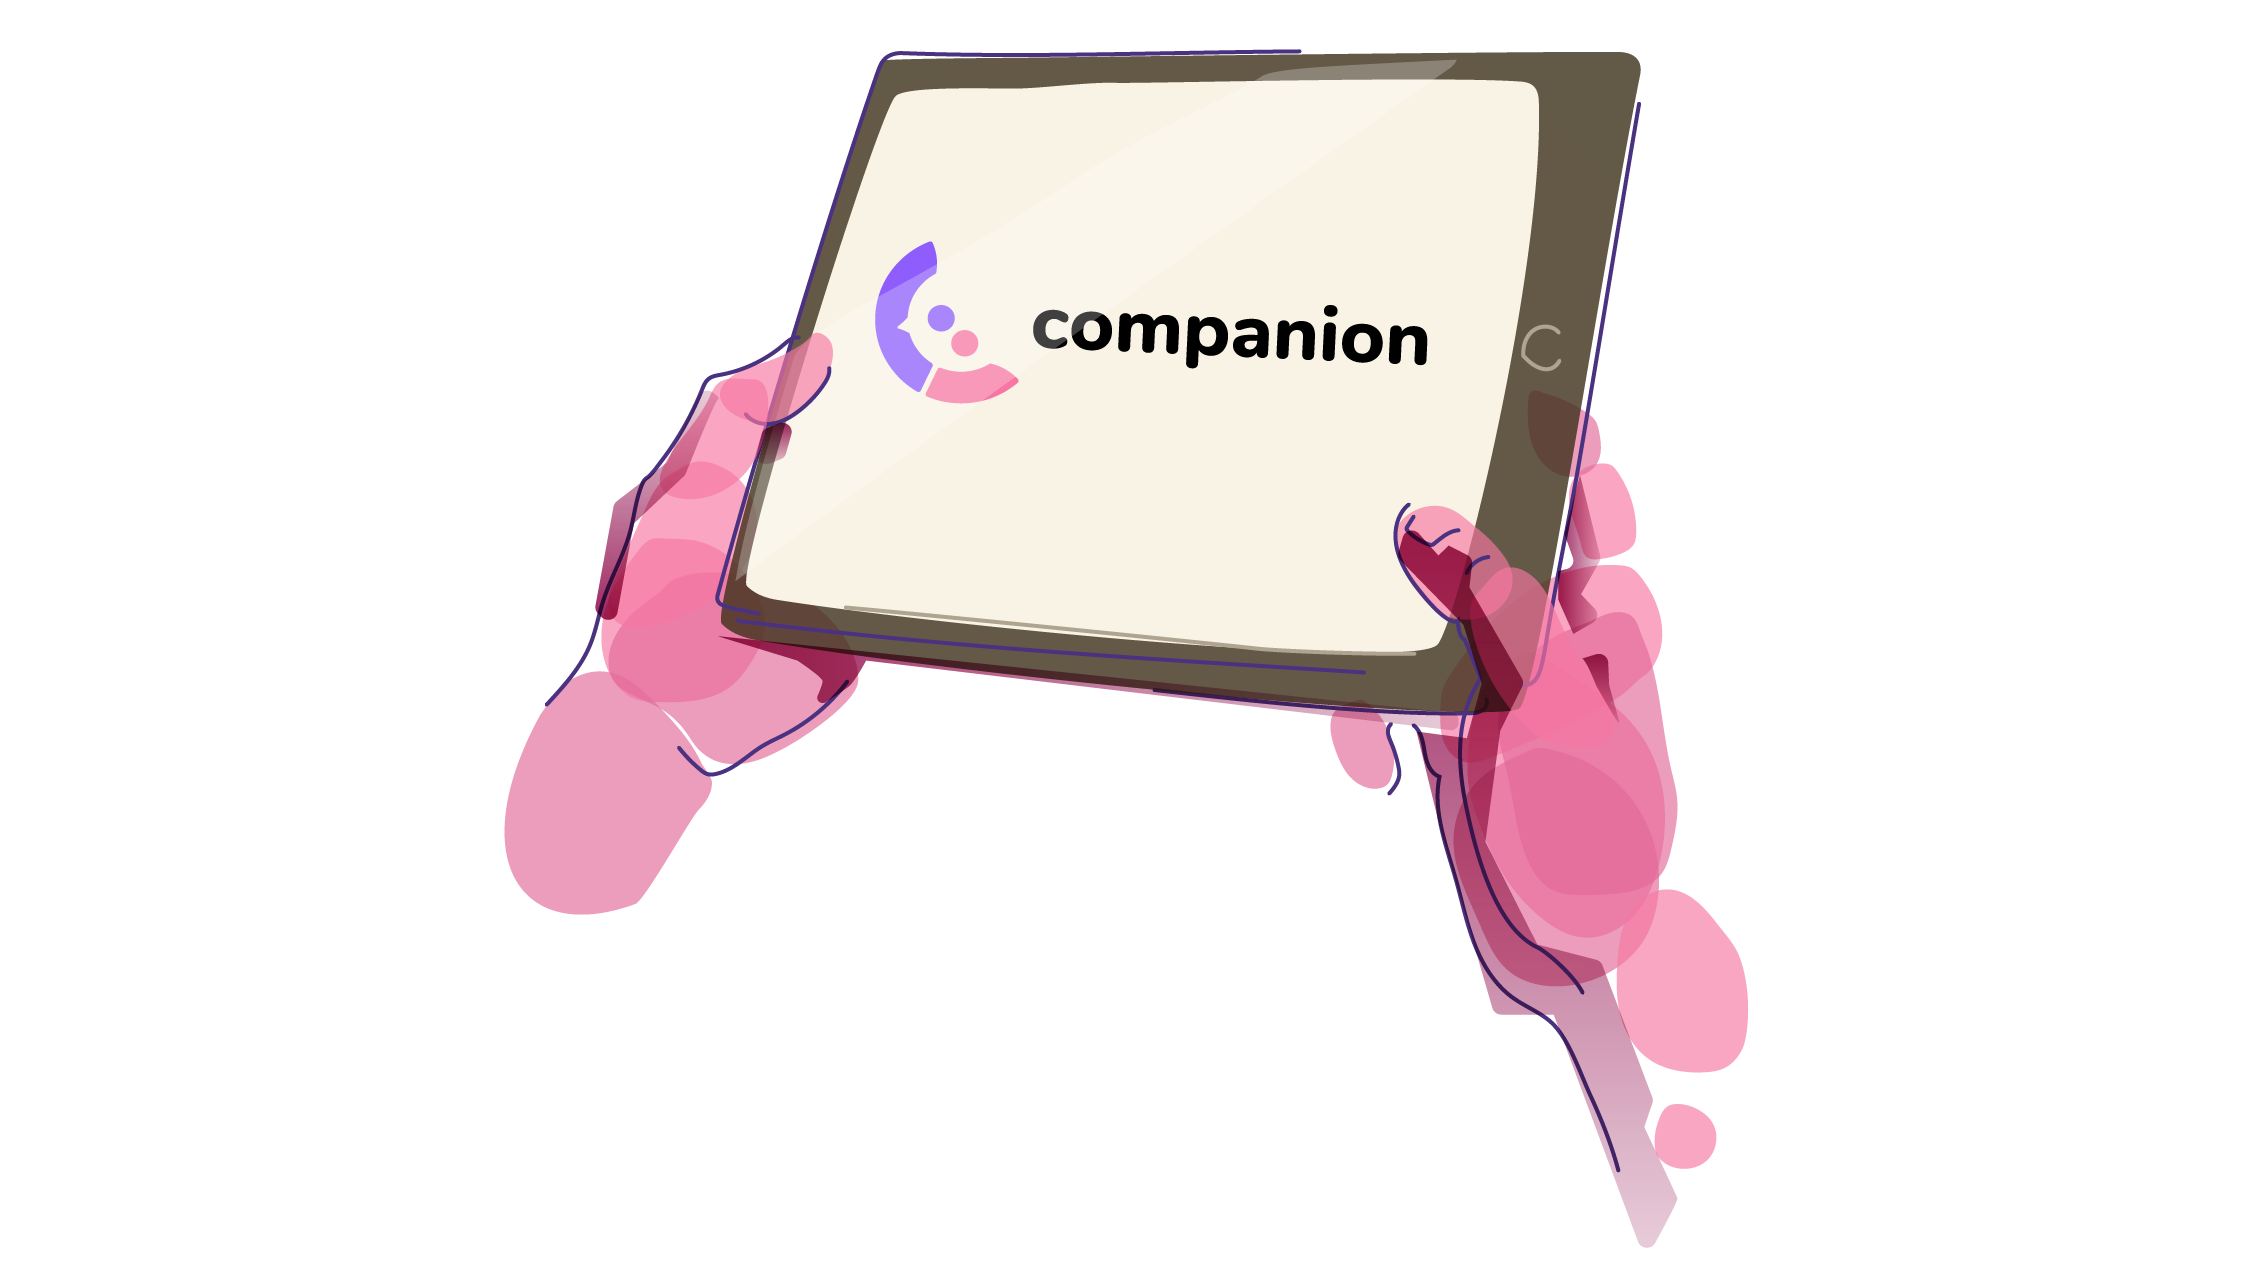 Stylized Pink Hands Holding A Tablet, Which Is Displaying The Companion Logo.